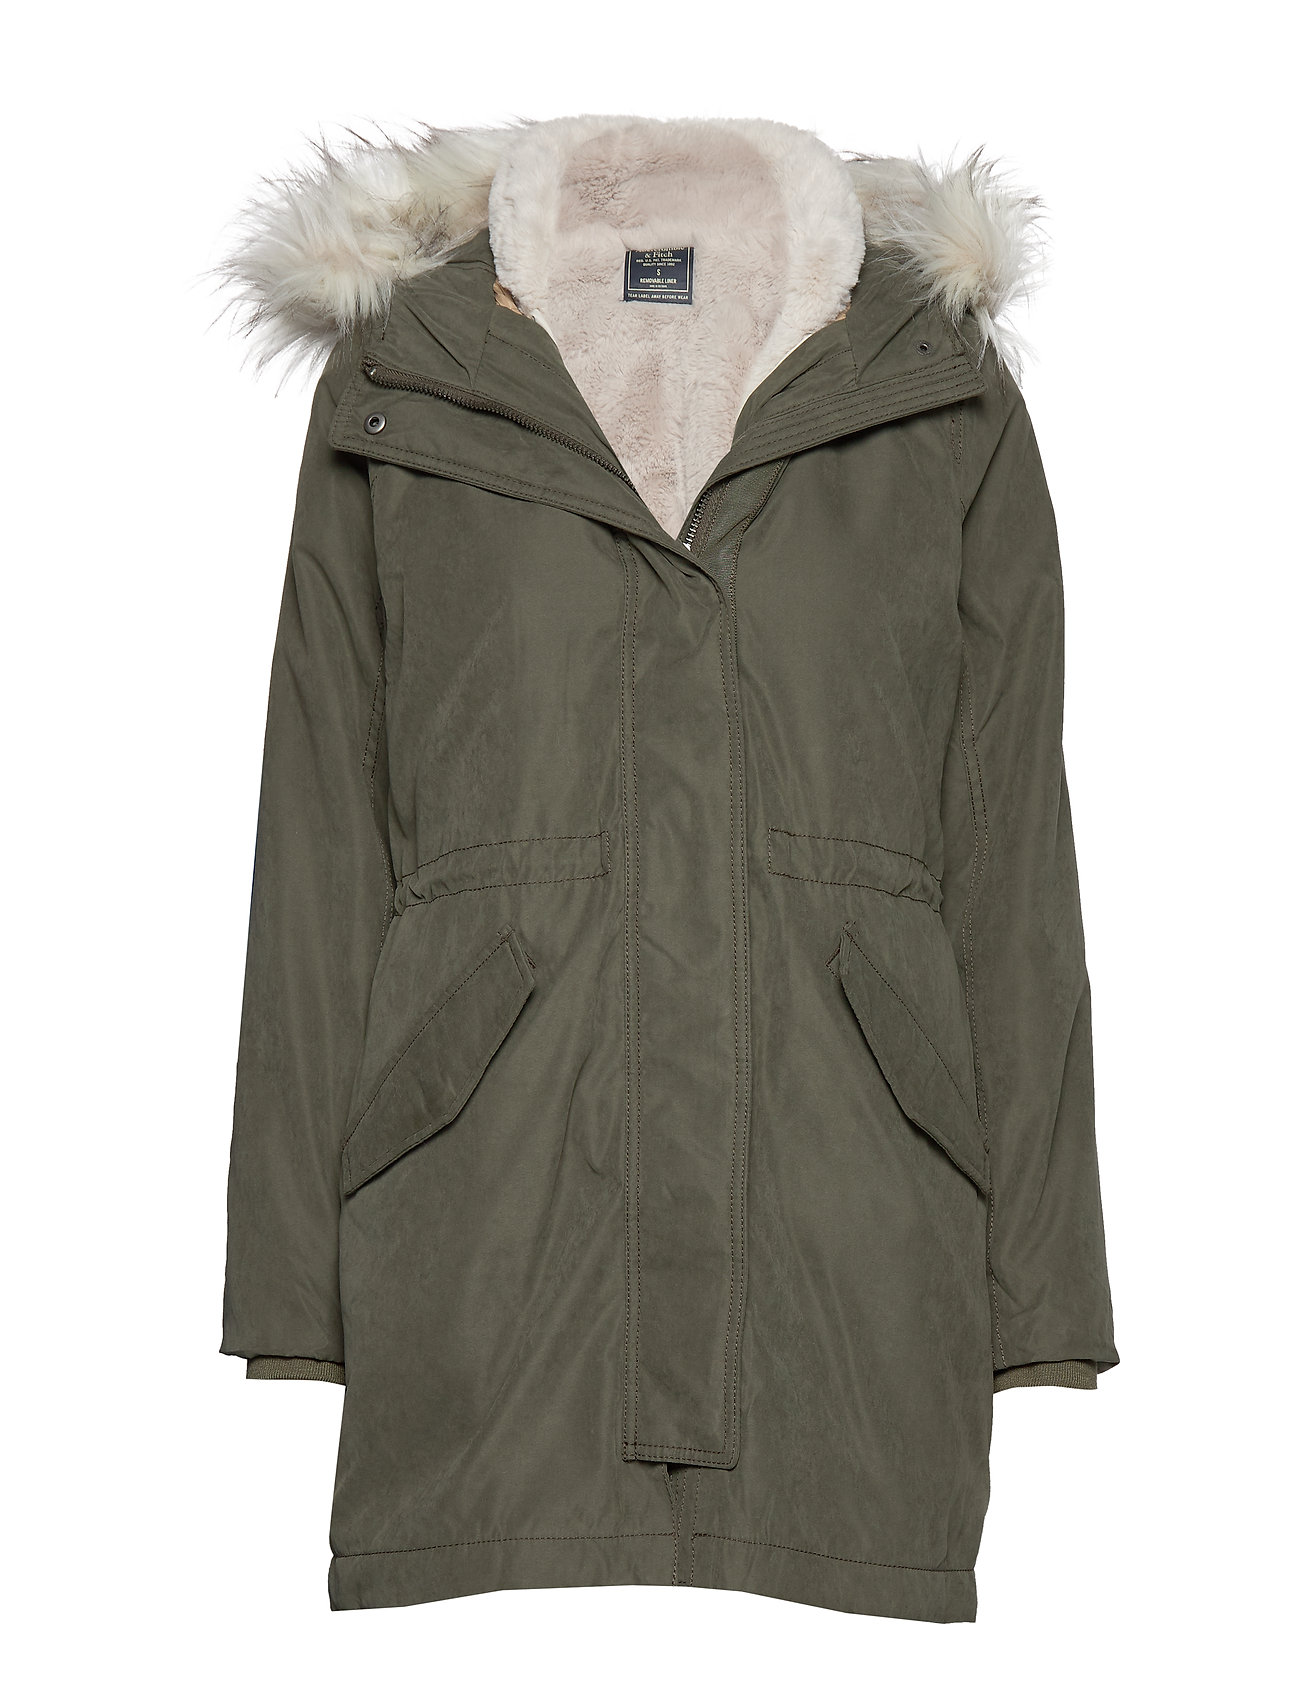 Abercrombie & Fitch Parka - OLIVE DD